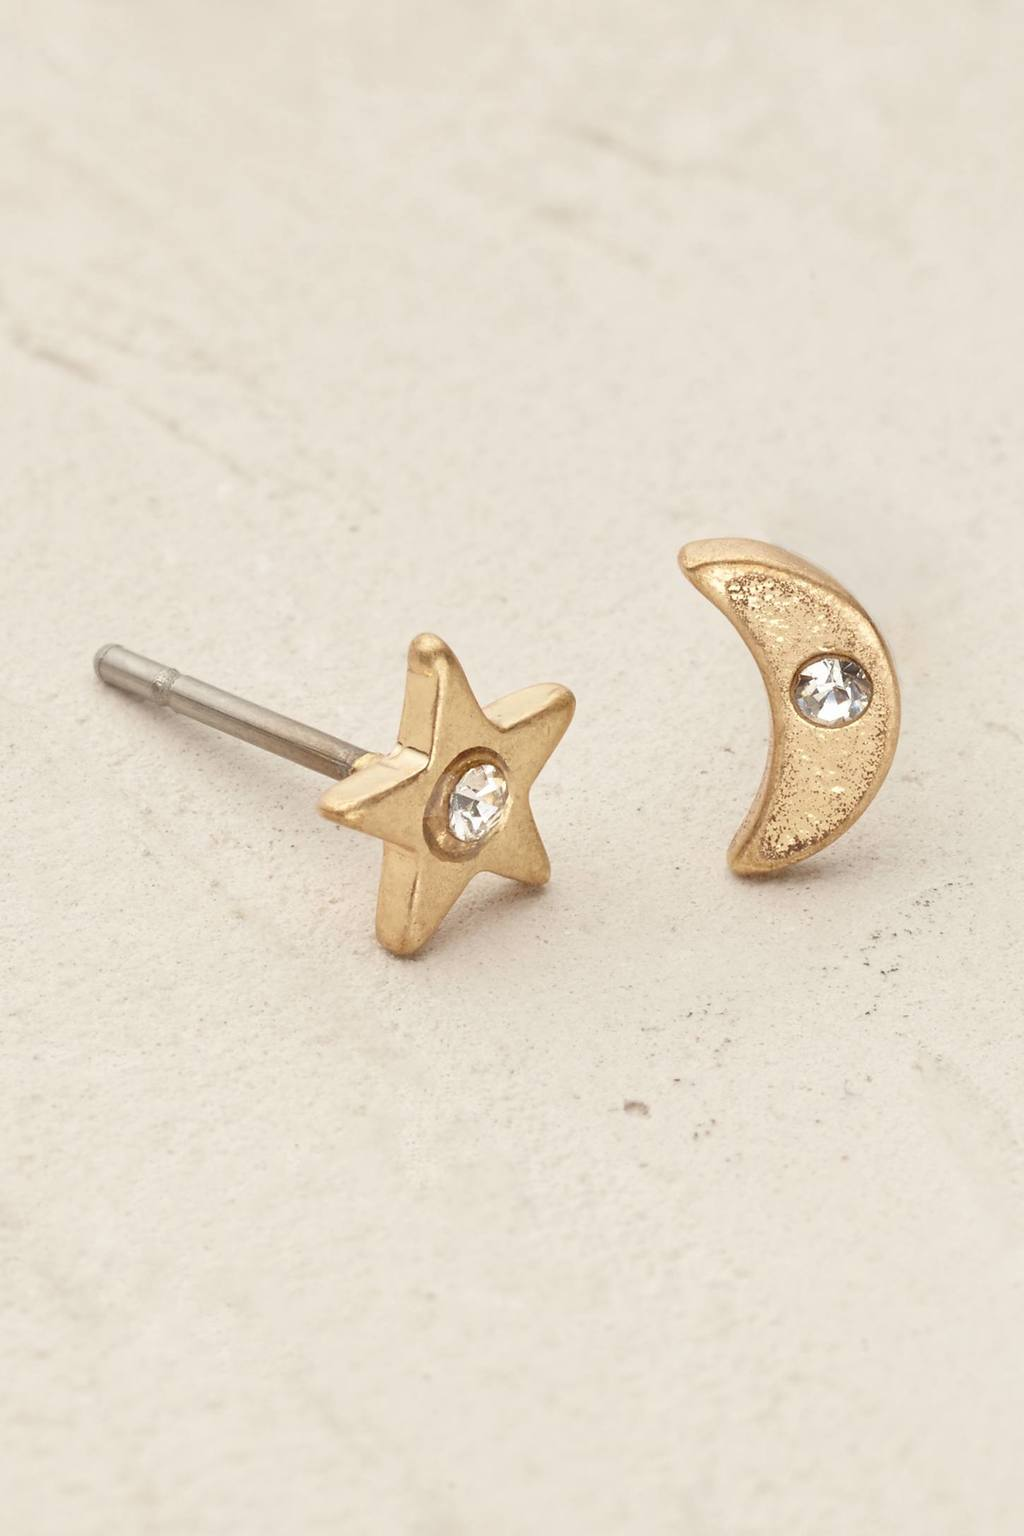 Starry Night Earrings - predominant colour: gold; occasions: casual, creative work; style: stud; length: short; size: small/fine; material: chain/metal; fastening: pierced; finish: plain; embellishment: crystals/glass; season: s/s 2016; wardrobe: basic